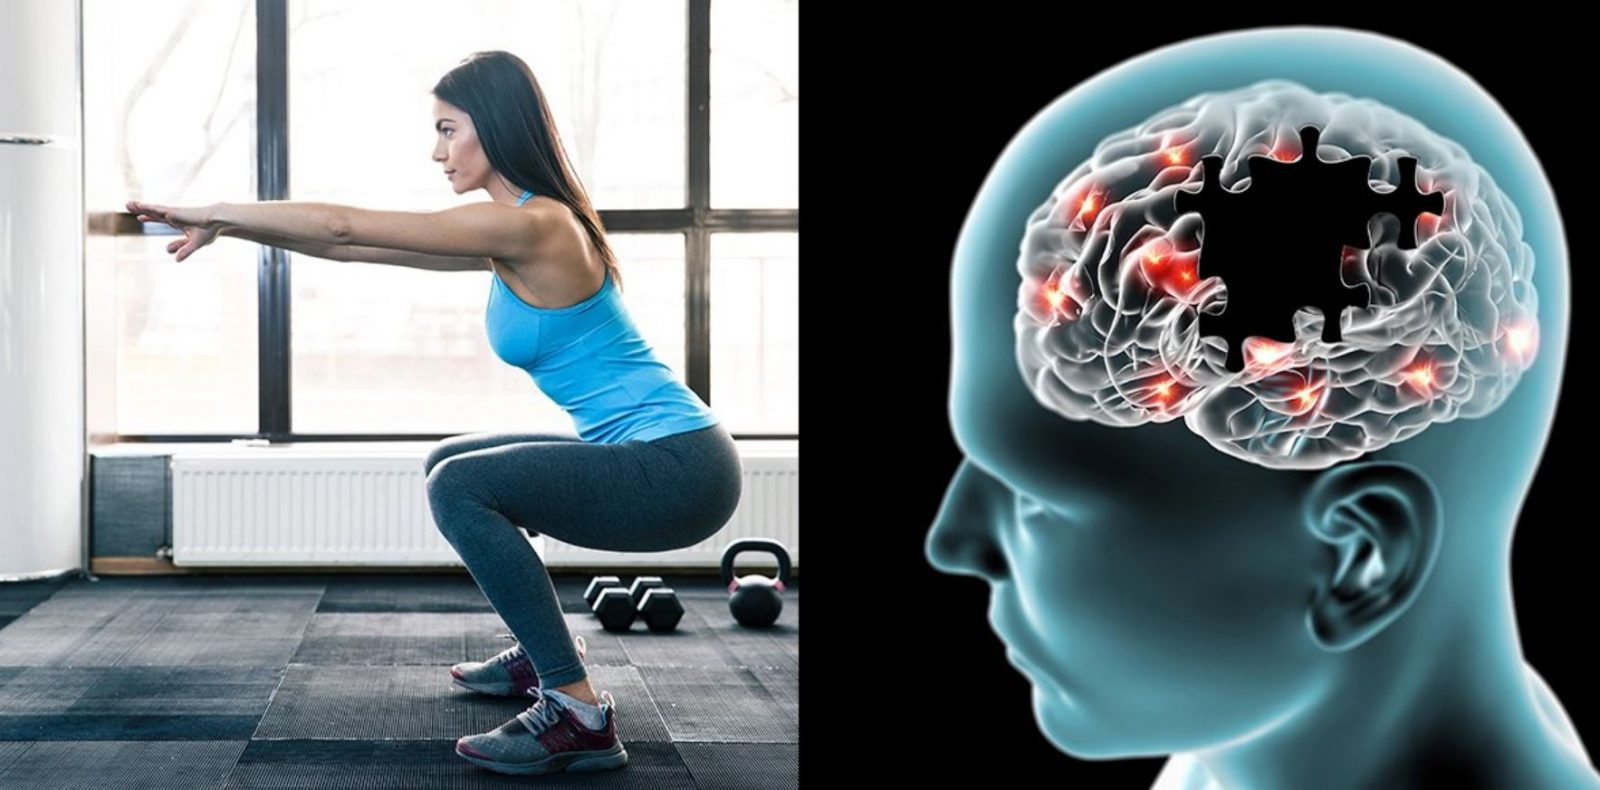 Short Bursts of Exercise Enhance Brain Function, Study Finds